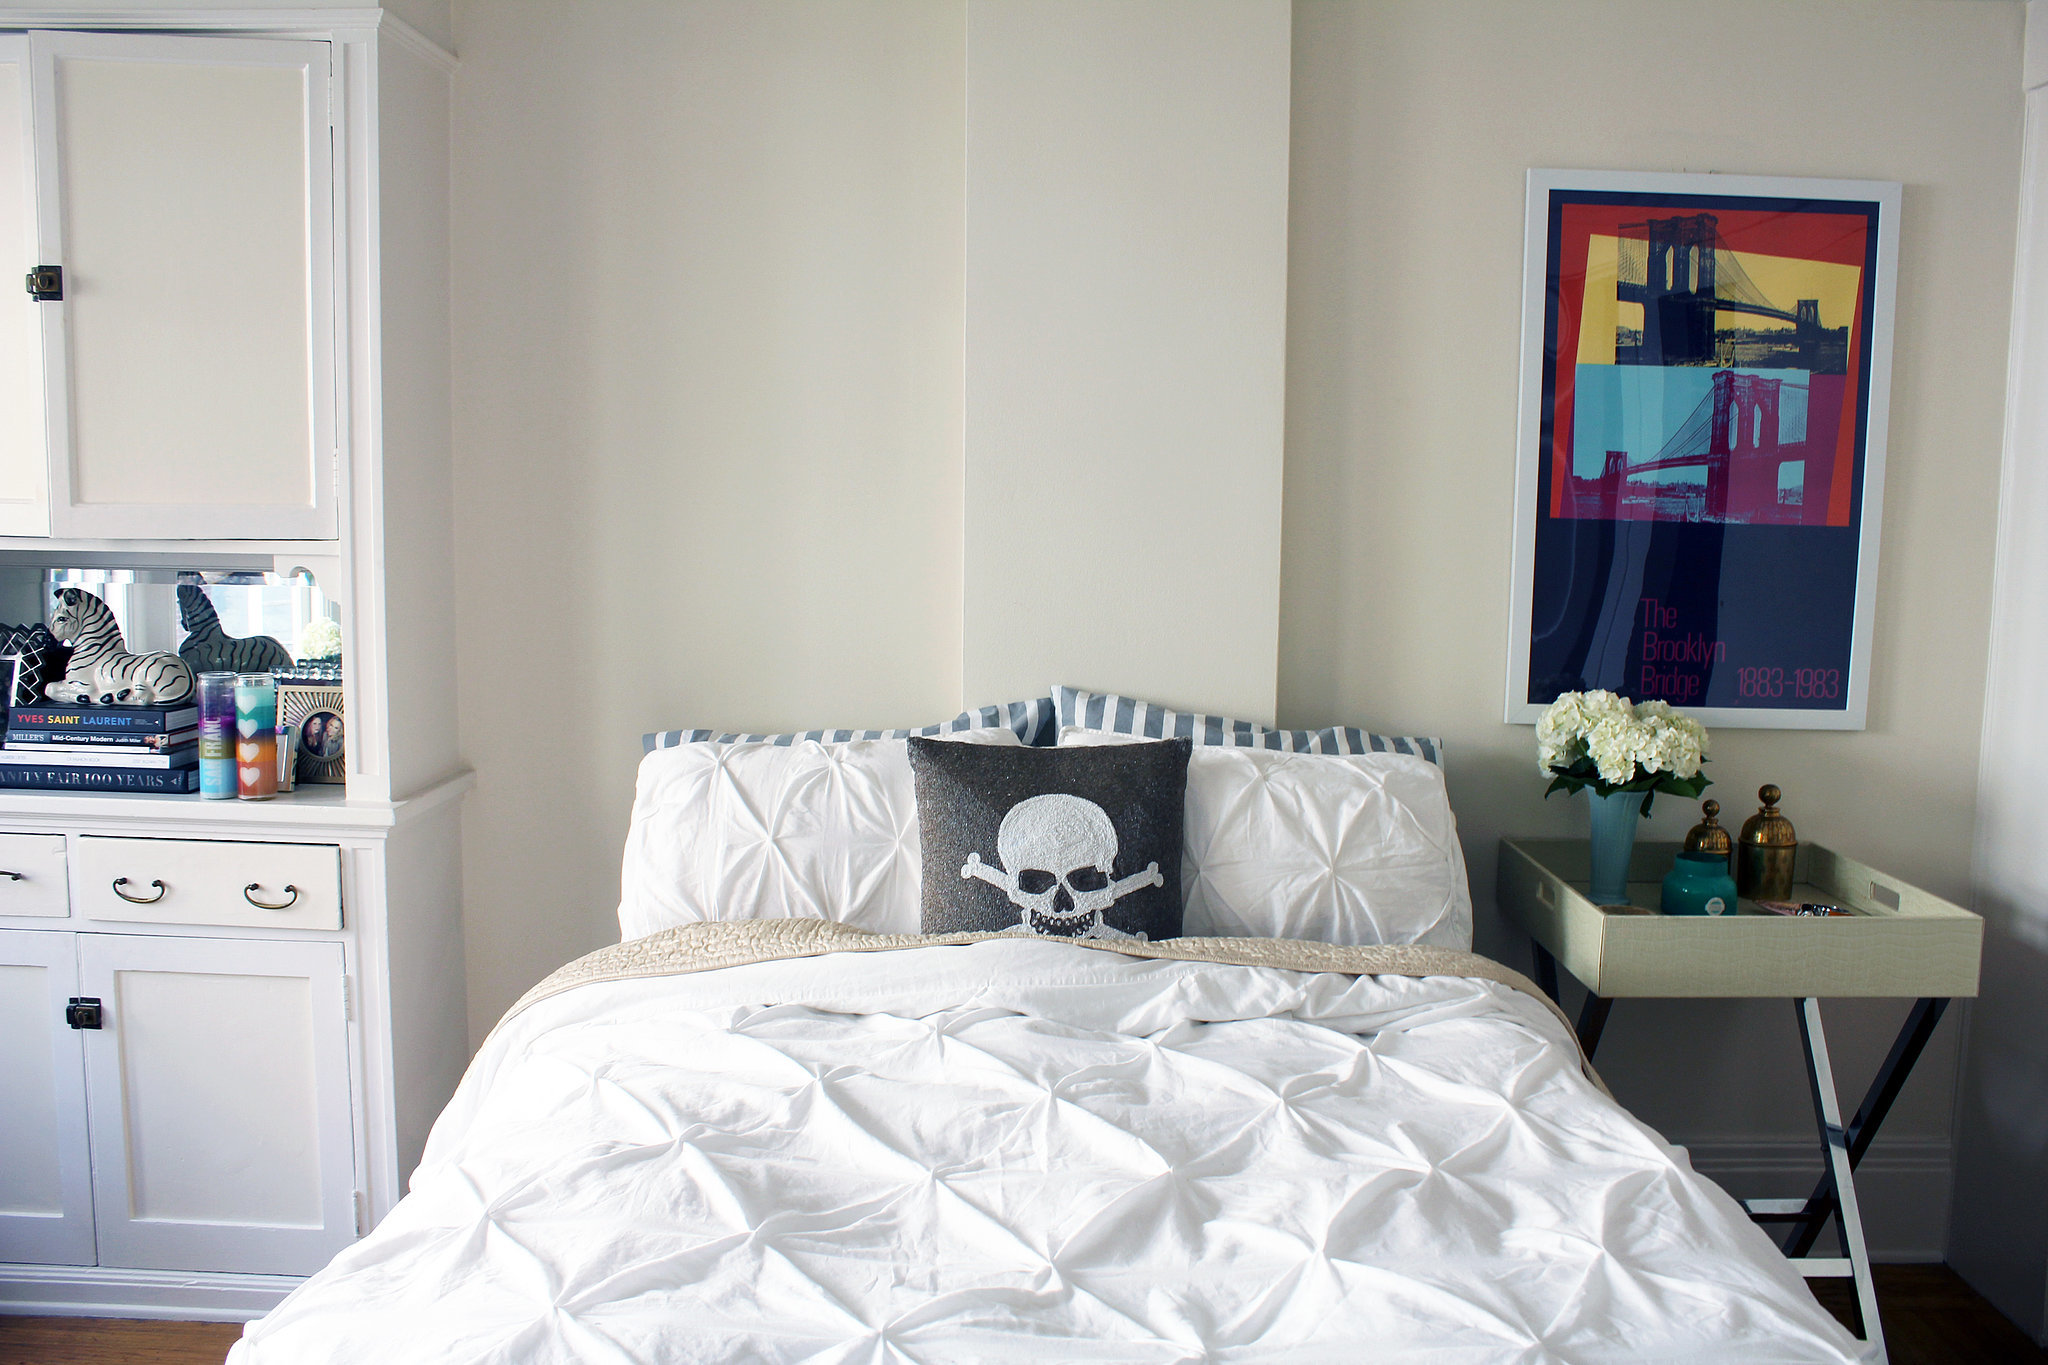 Just about every inch of the apartment has a touch of fun, like the pirate pillow on Emily's bed. It's all part of her philosophy: splurge on the big stuff like furniture but save on smaller items like pillows and bedding because you'll want to switch them up more often.